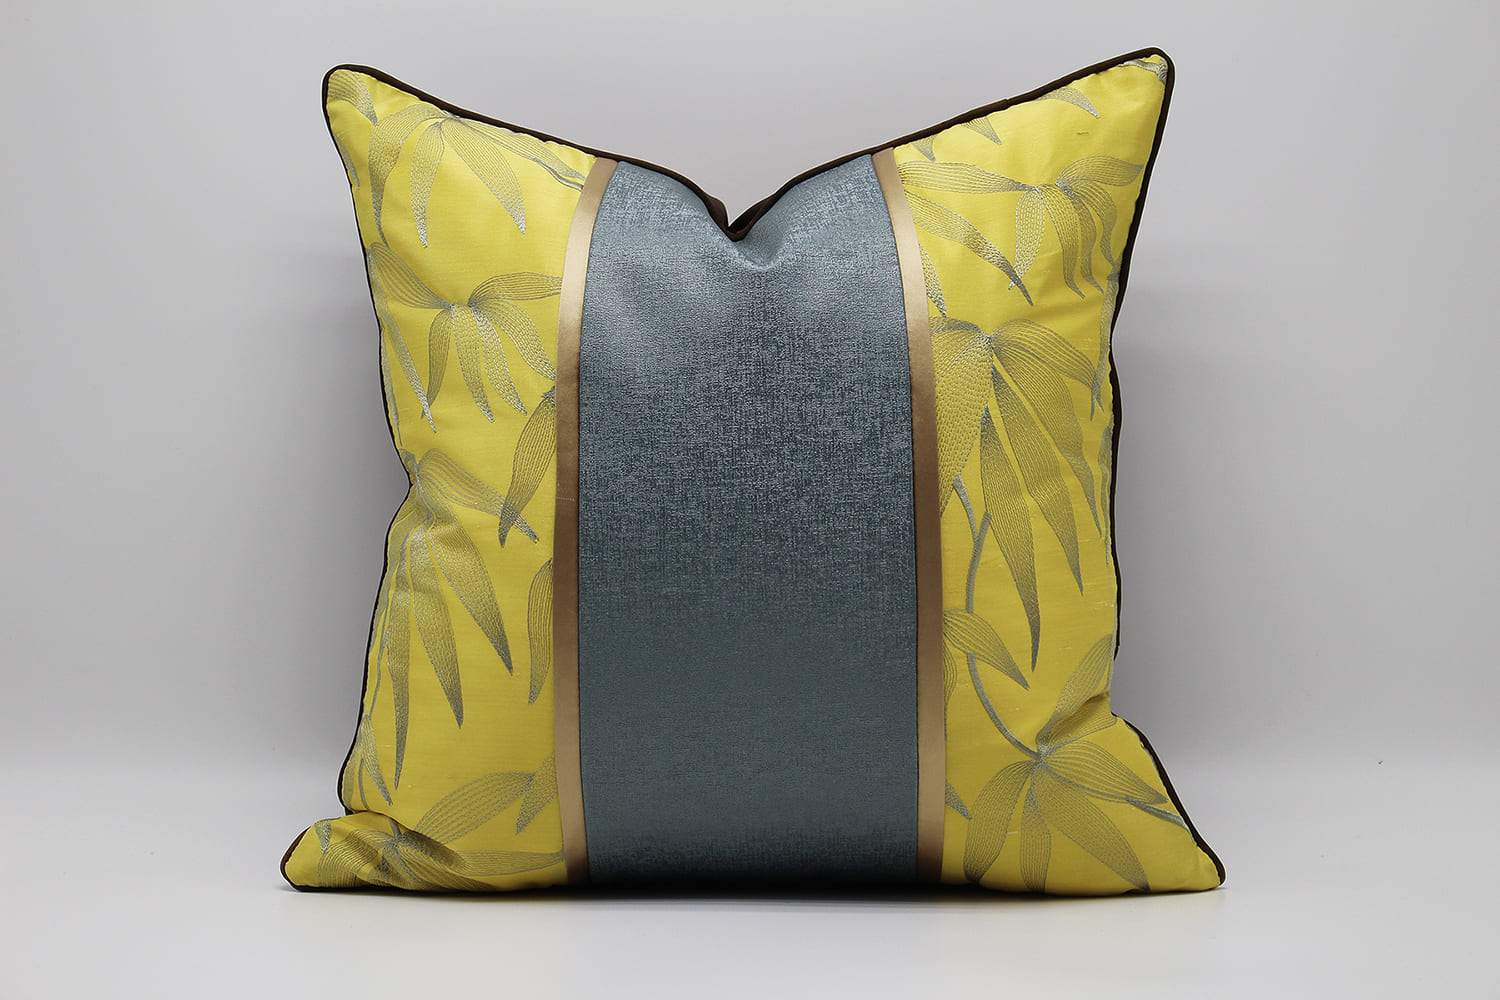 SIESTA BEST LEMON GREY  CUSHIONS - ANGIE HOMES ANGIE HOMES